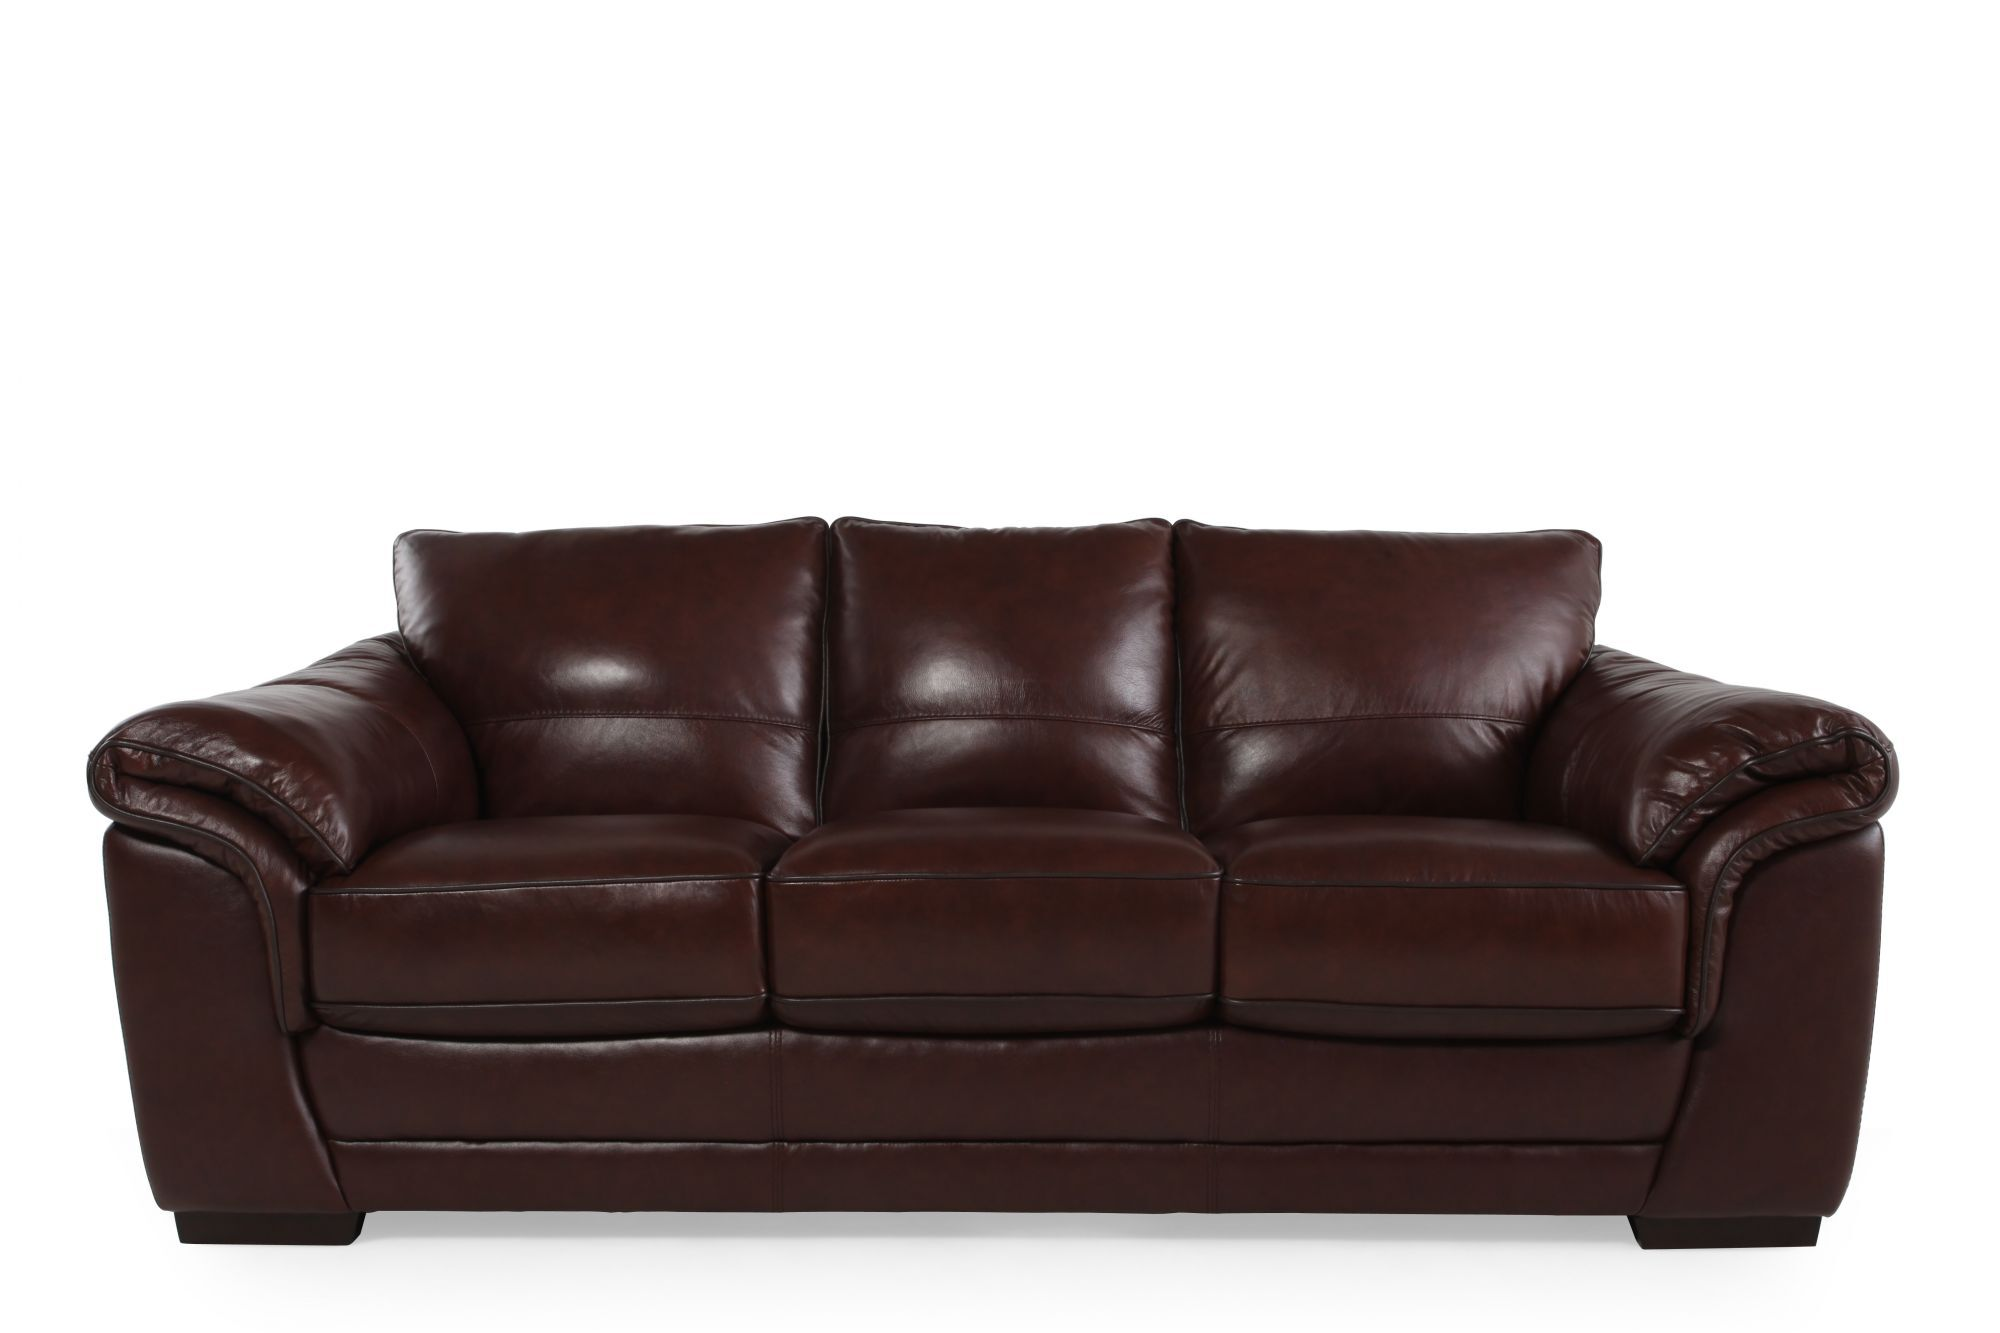 contemporary 37 leather sofa in dark brown mathis brothers furniture. Black Bedroom Furniture Sets. Home Design Ideas